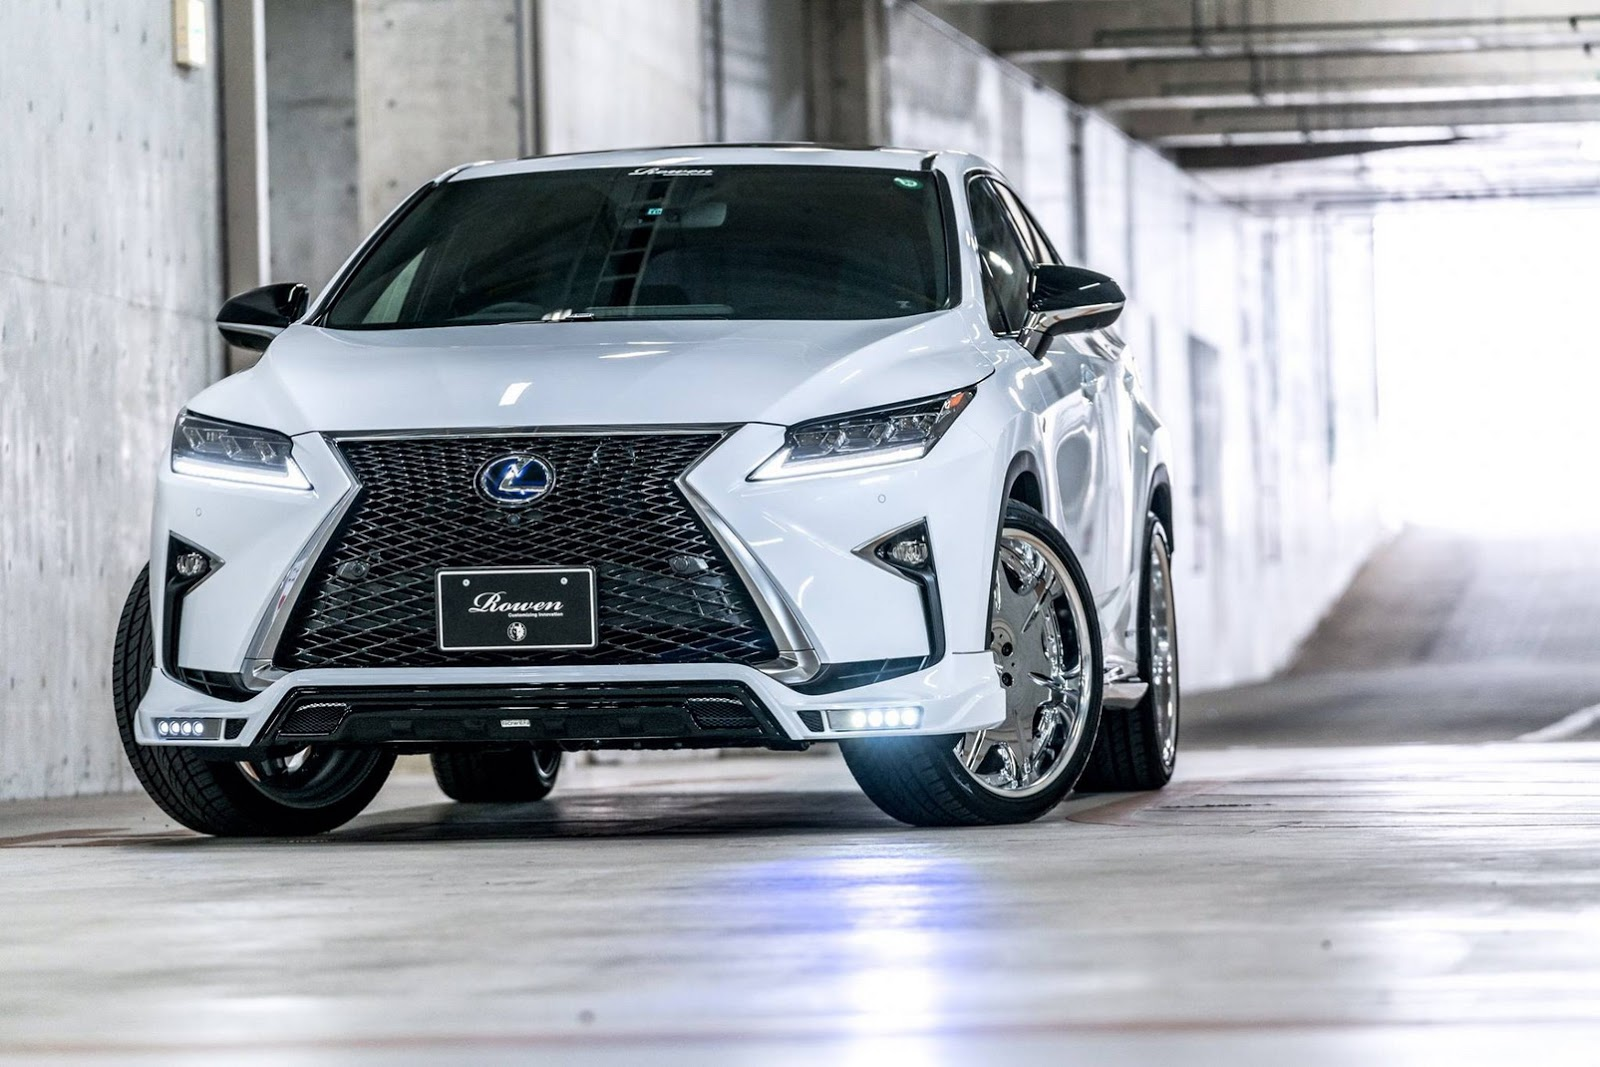 While the latest Lexus RX SUV is arguably one of the most stylish of ...